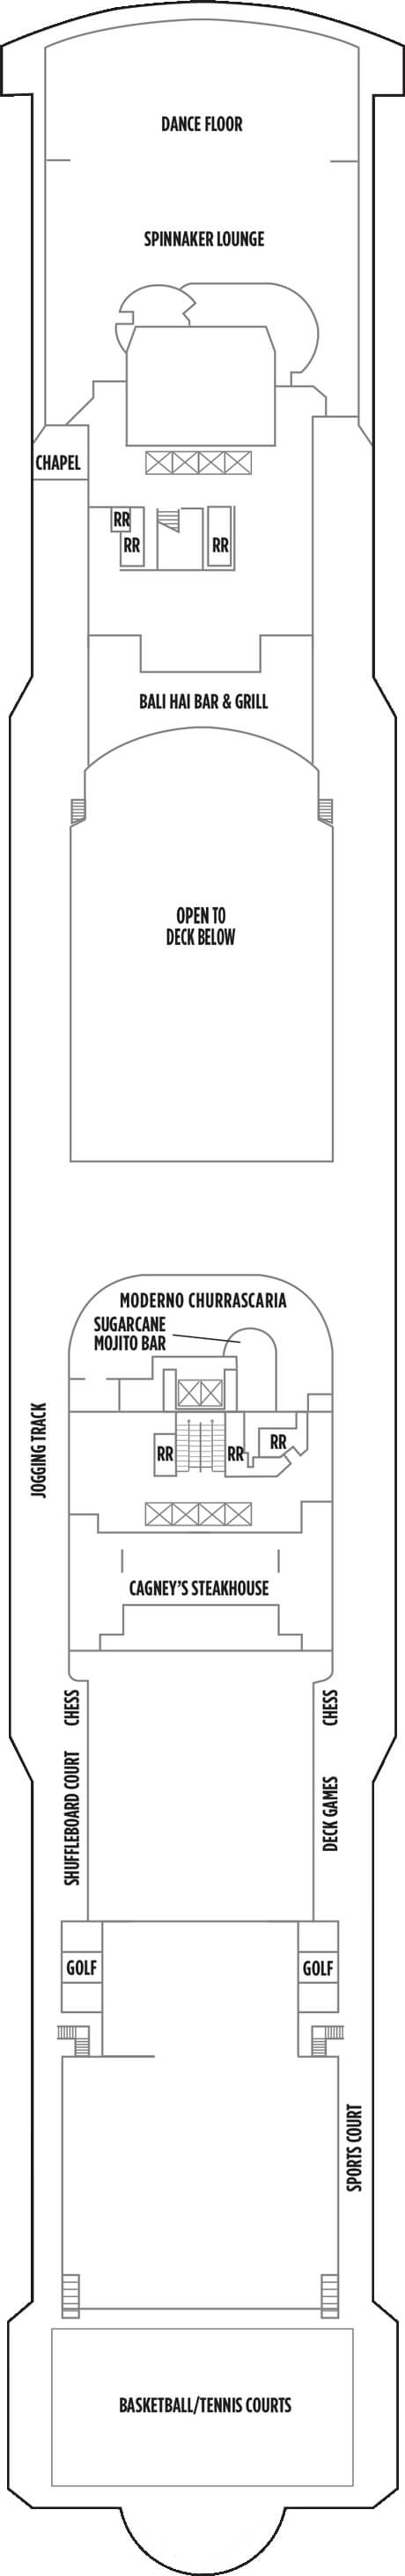 Norwegian Gem Deck 13 layout